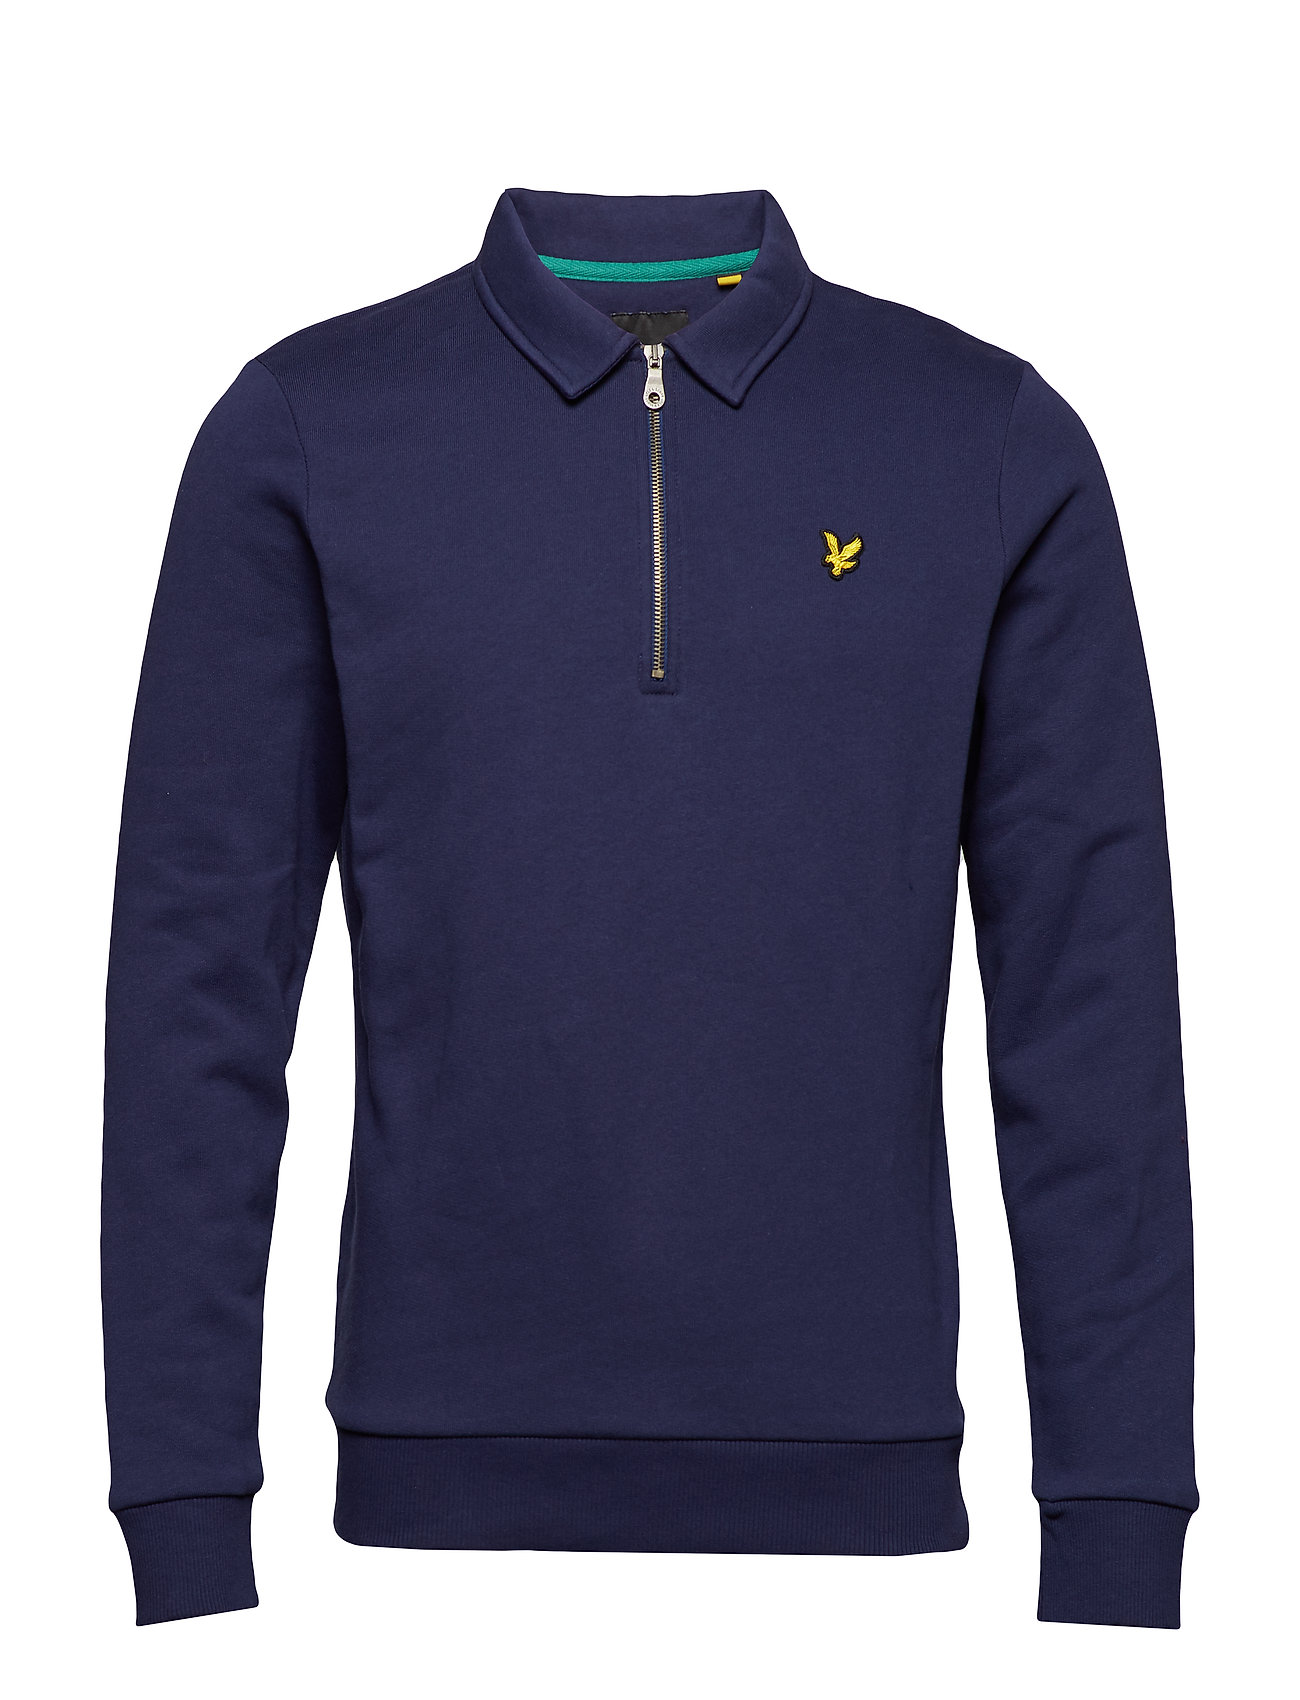 Image of Collared 1/4 Zip Sweatshirt Langærmet Trøje Blå LYLE & SCOTT (3090828769)